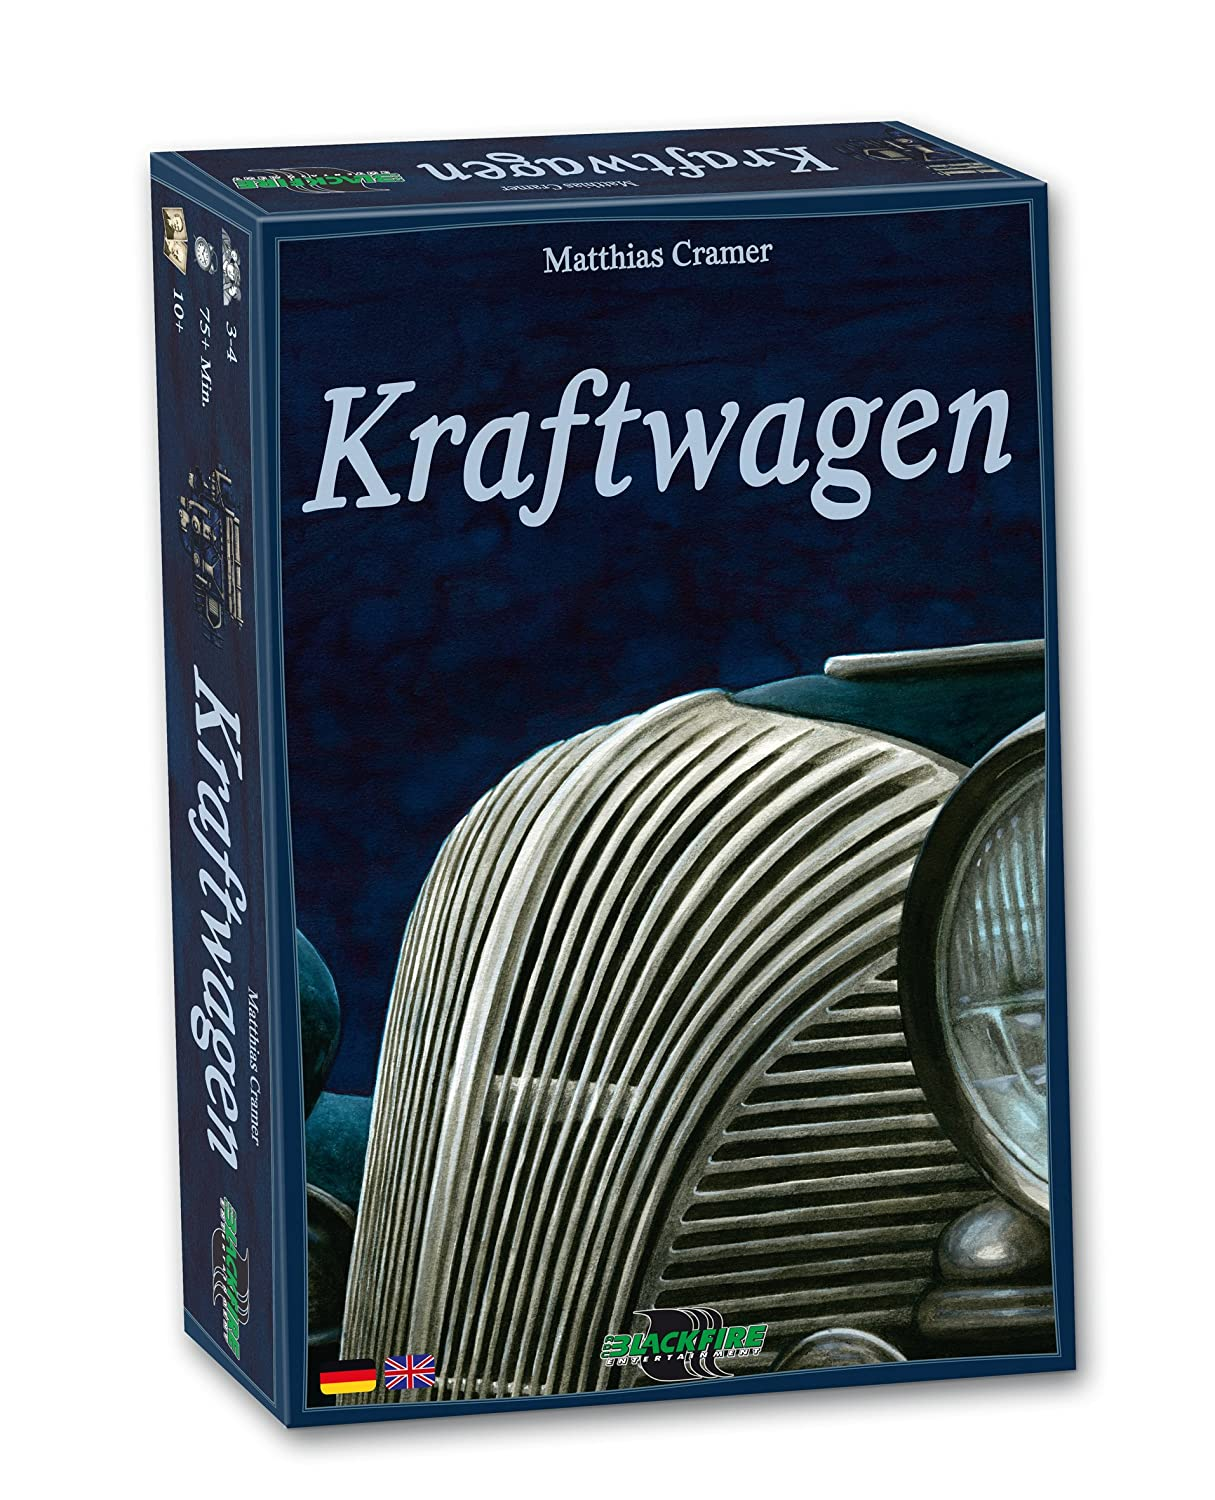 ADC Blackfire Entertainment ADCDE201501 - Kraftwagen Brettspiel / Strategiespiel von Matthias Cramer